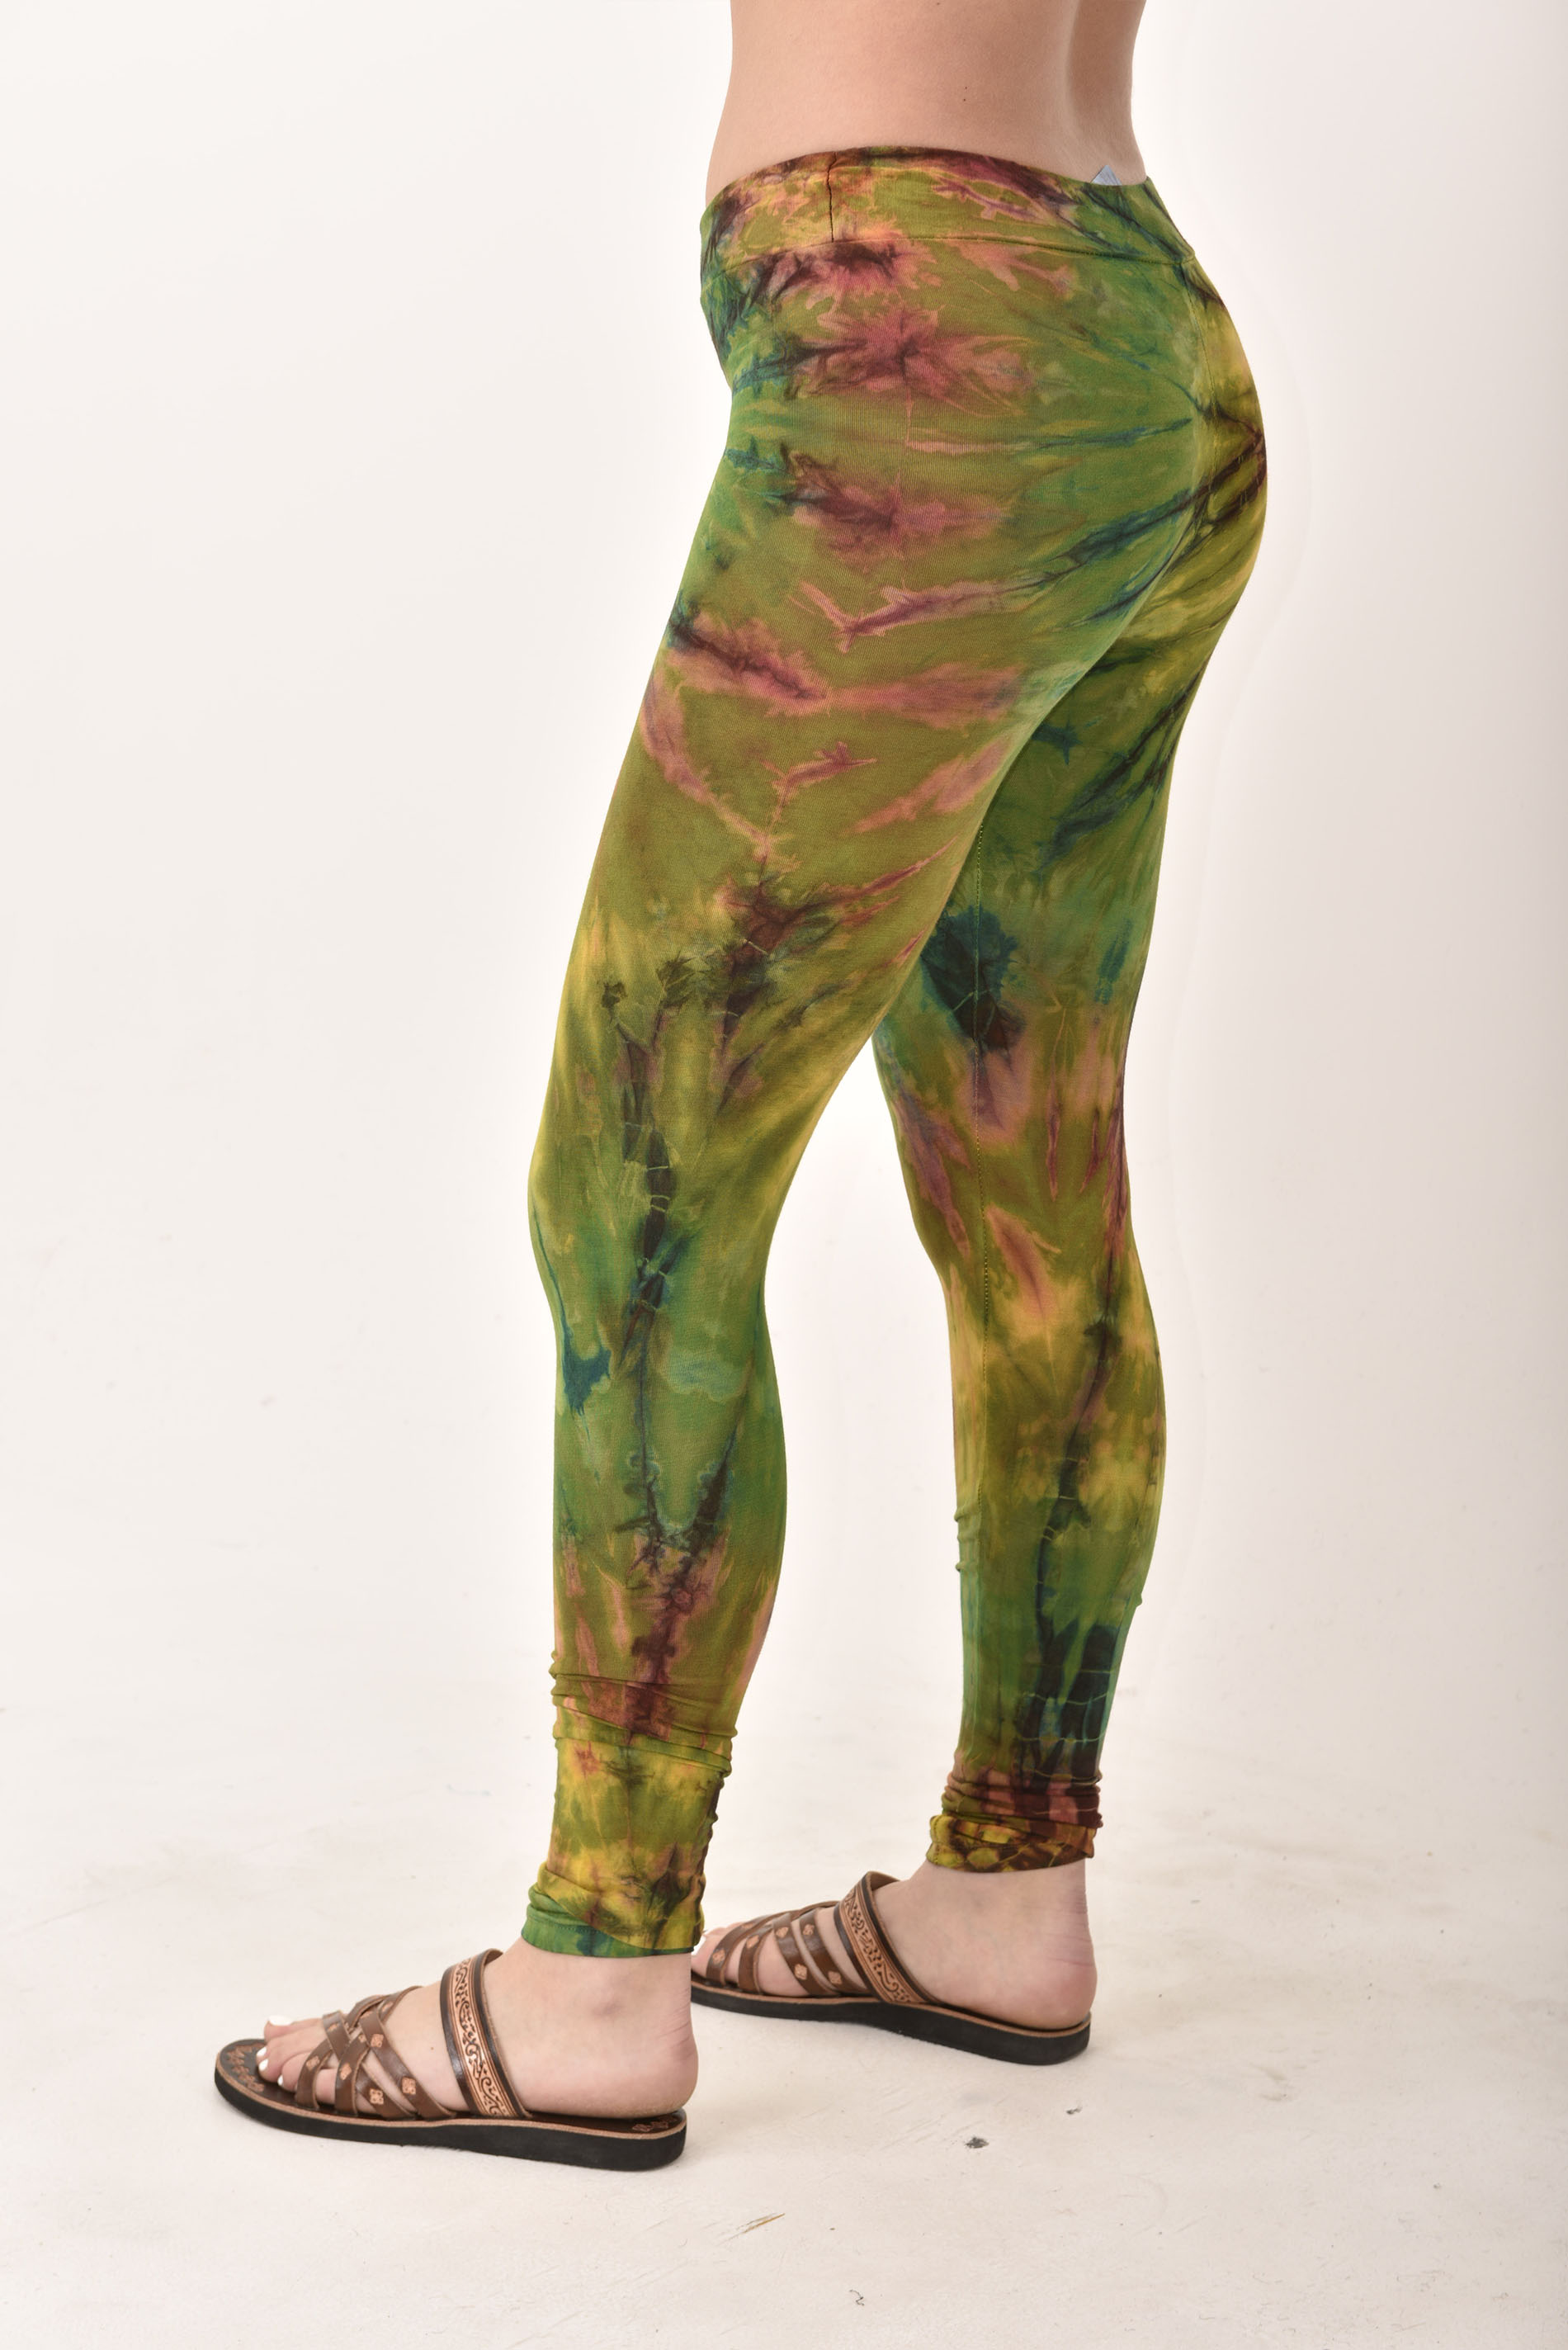 Hand Painted Tie Dye deluxe Leggings on higher quality Rayon/Spandex blend, Olive Multi